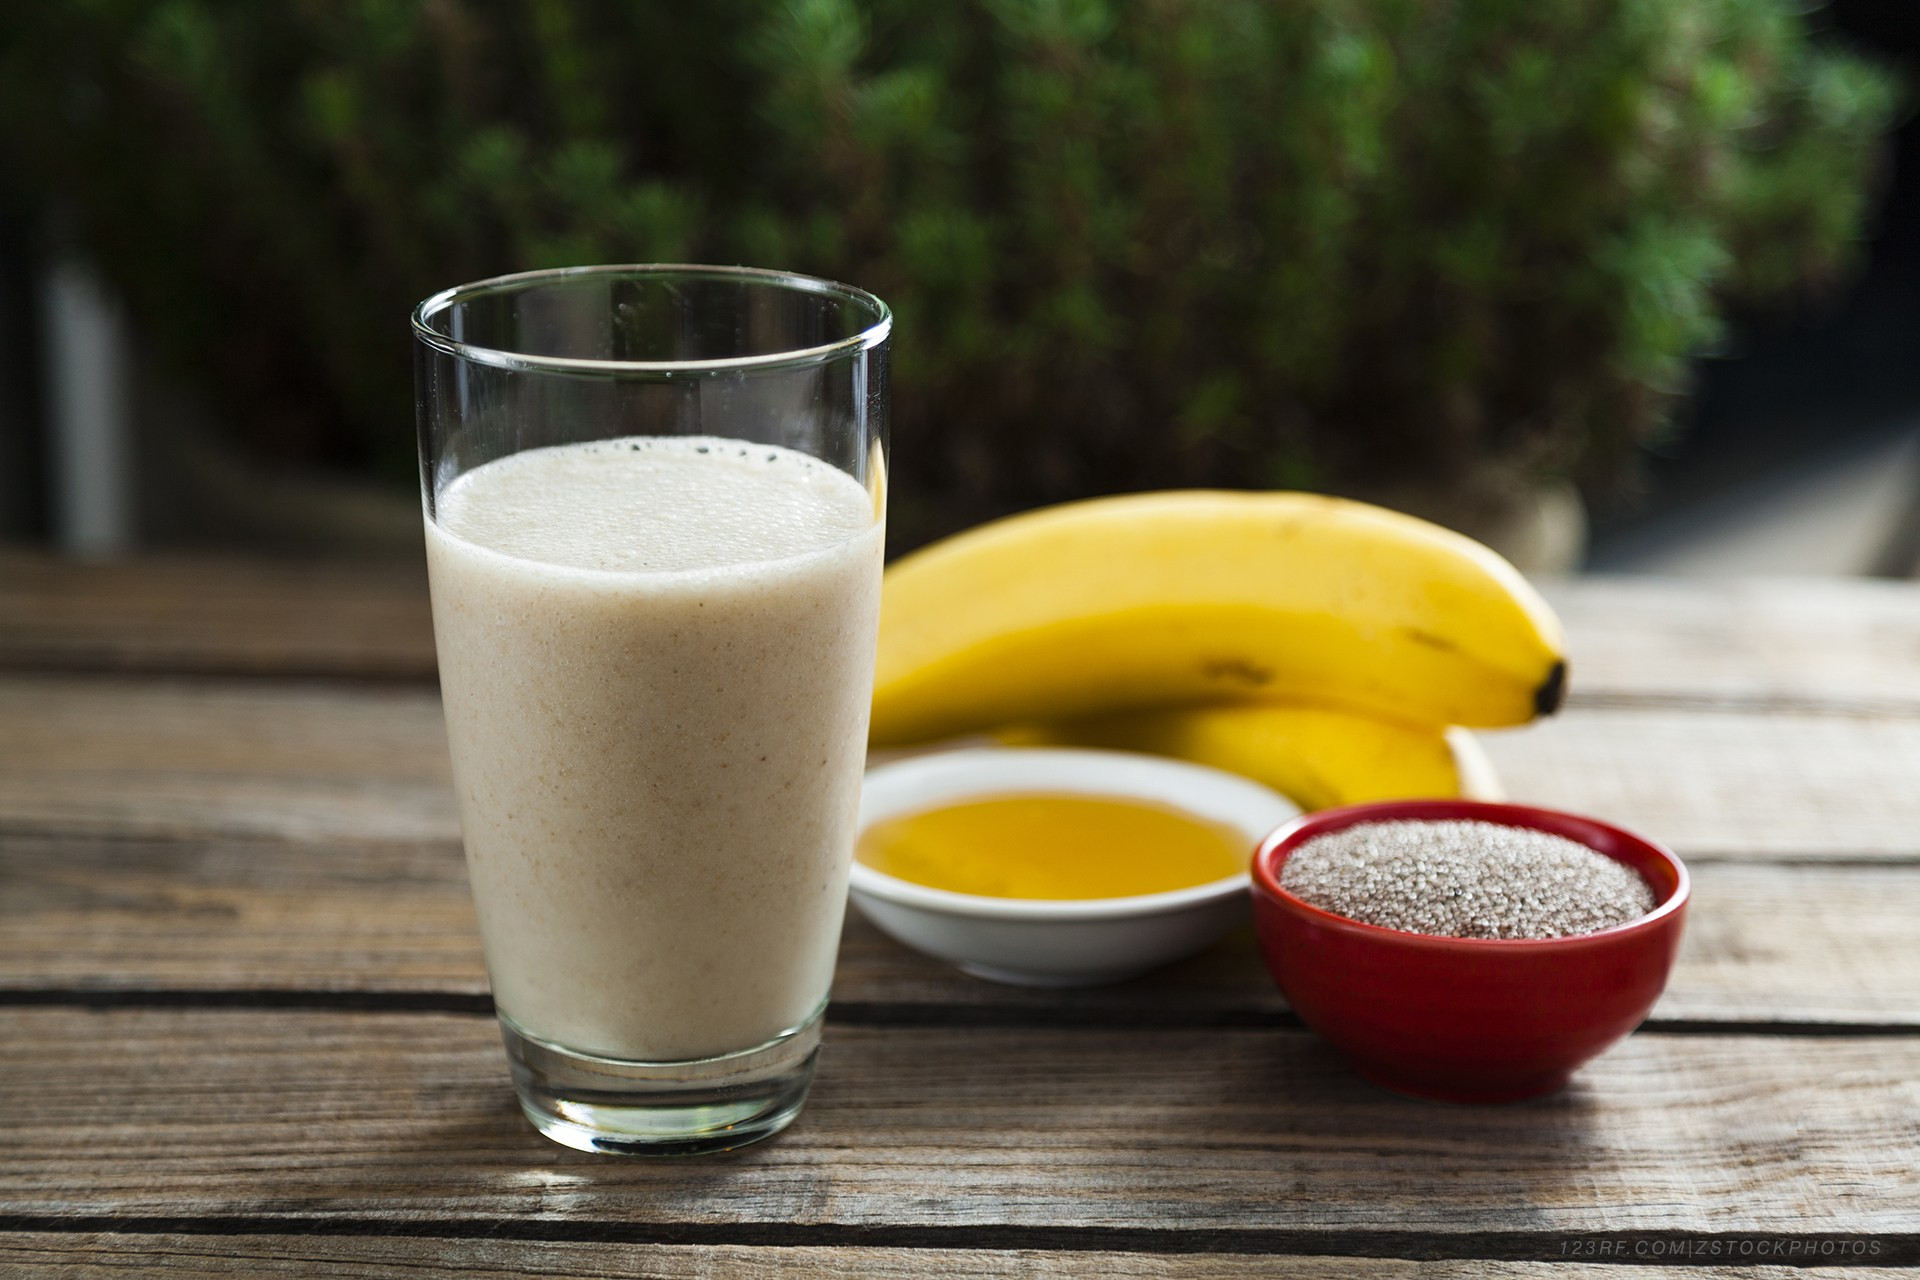 Healthy Filling Smoothies  5 quick colorful & filling smoothies packed with healthy